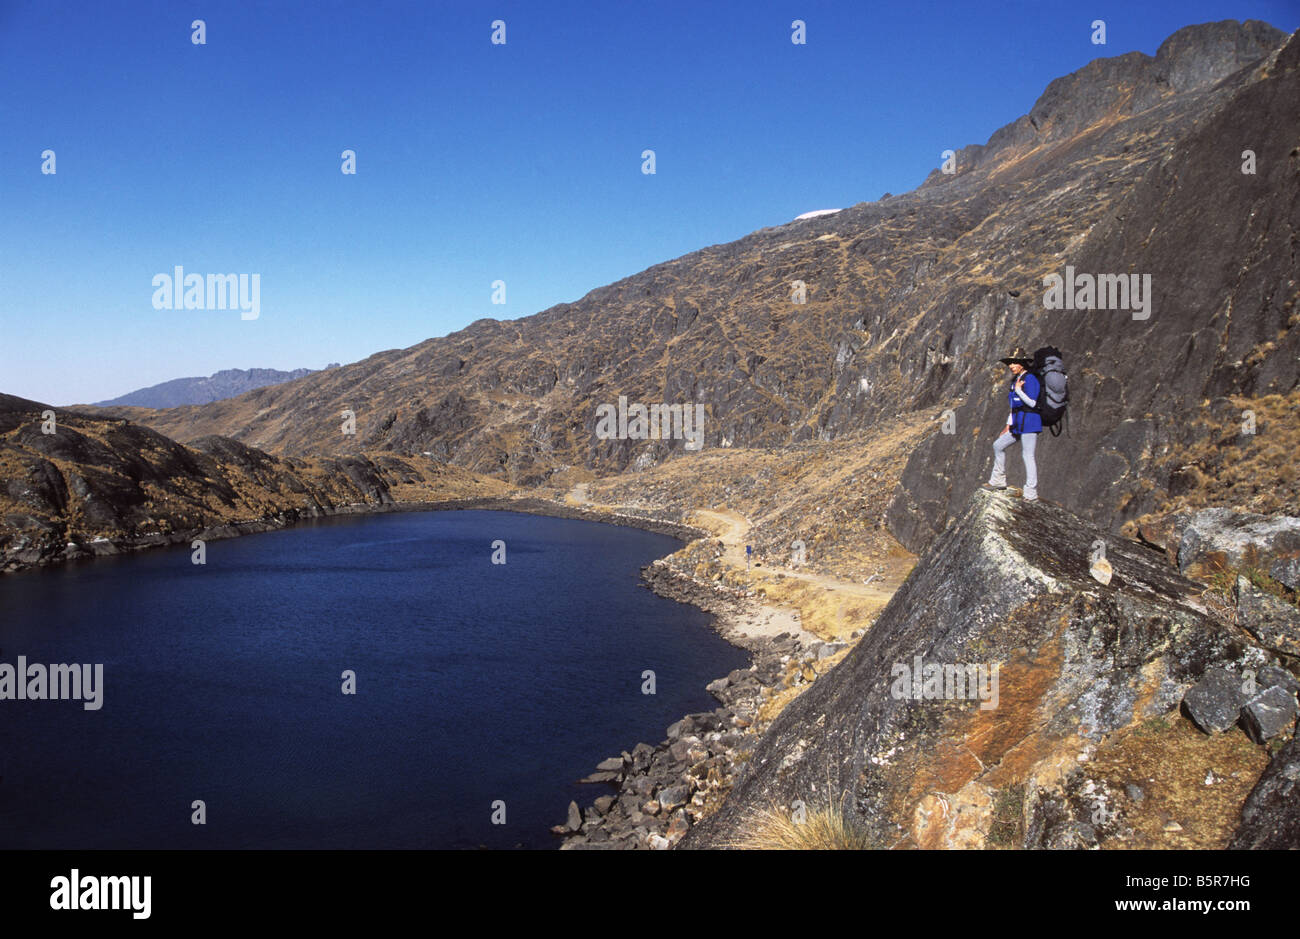 Trekker looking at view over glacial lake on the Takesi Inca Trail, Cordillera Real, Bolivia - Stock Image